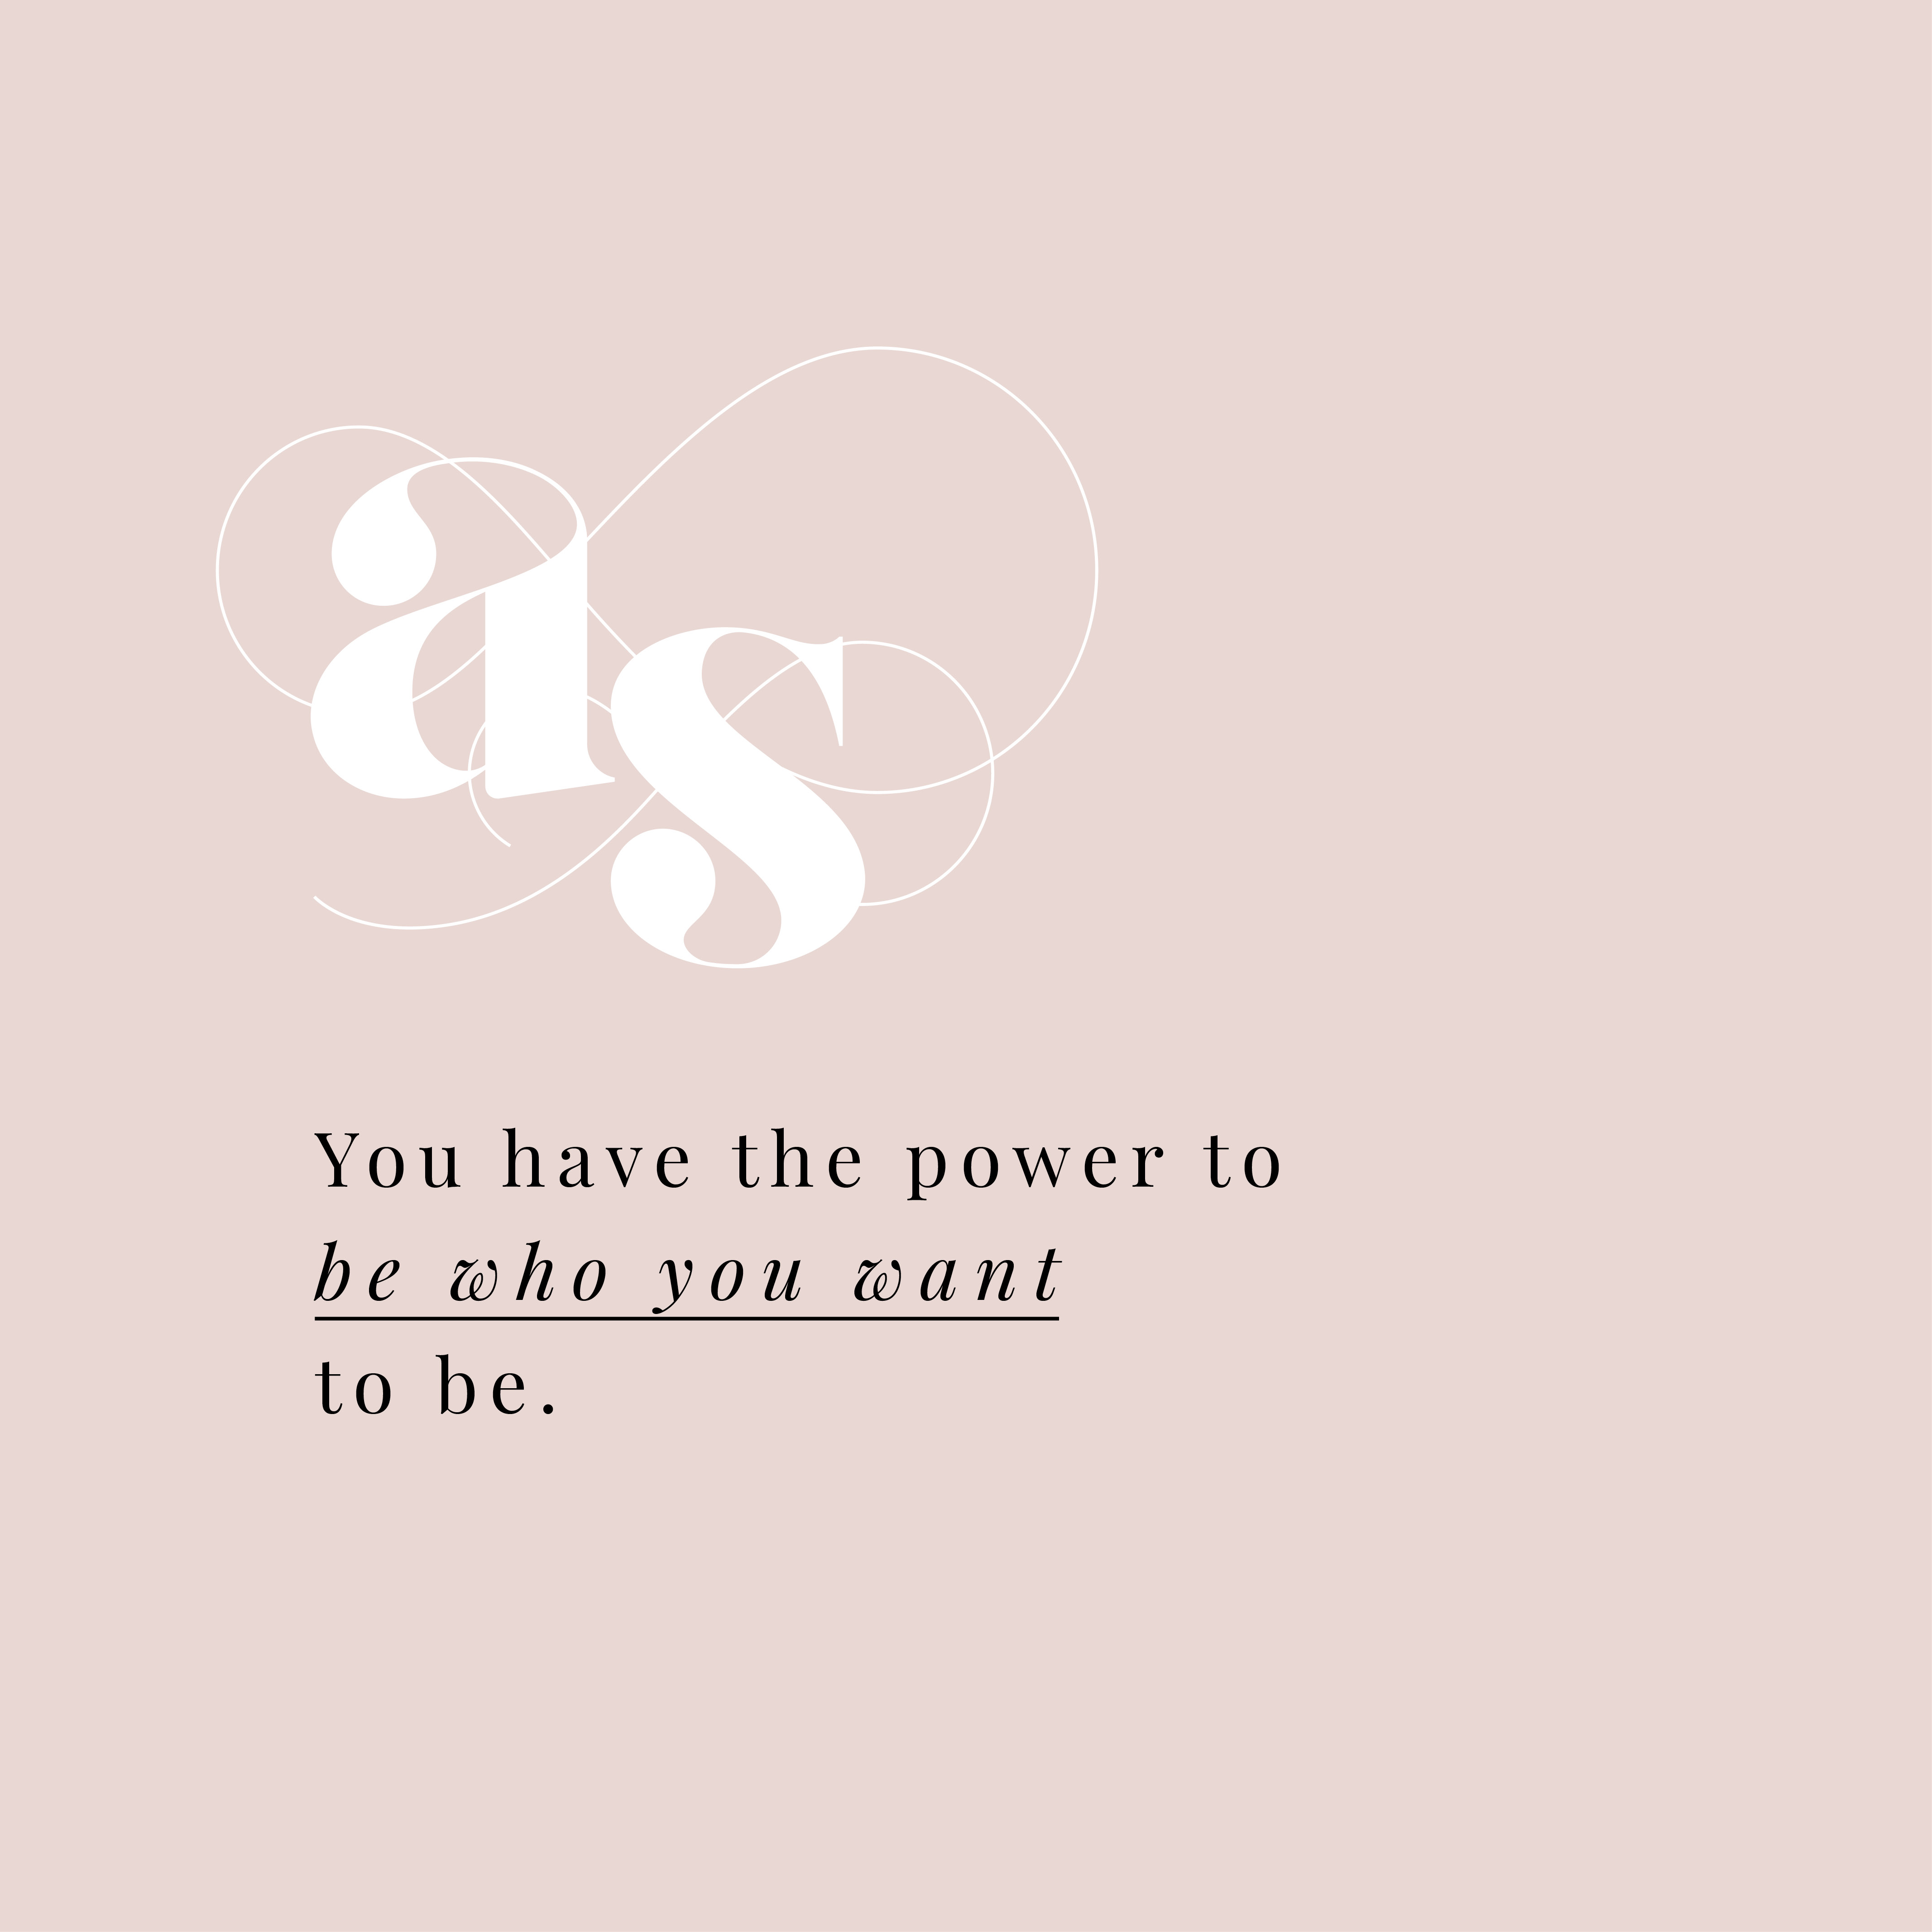 you have the power to be who you want to be